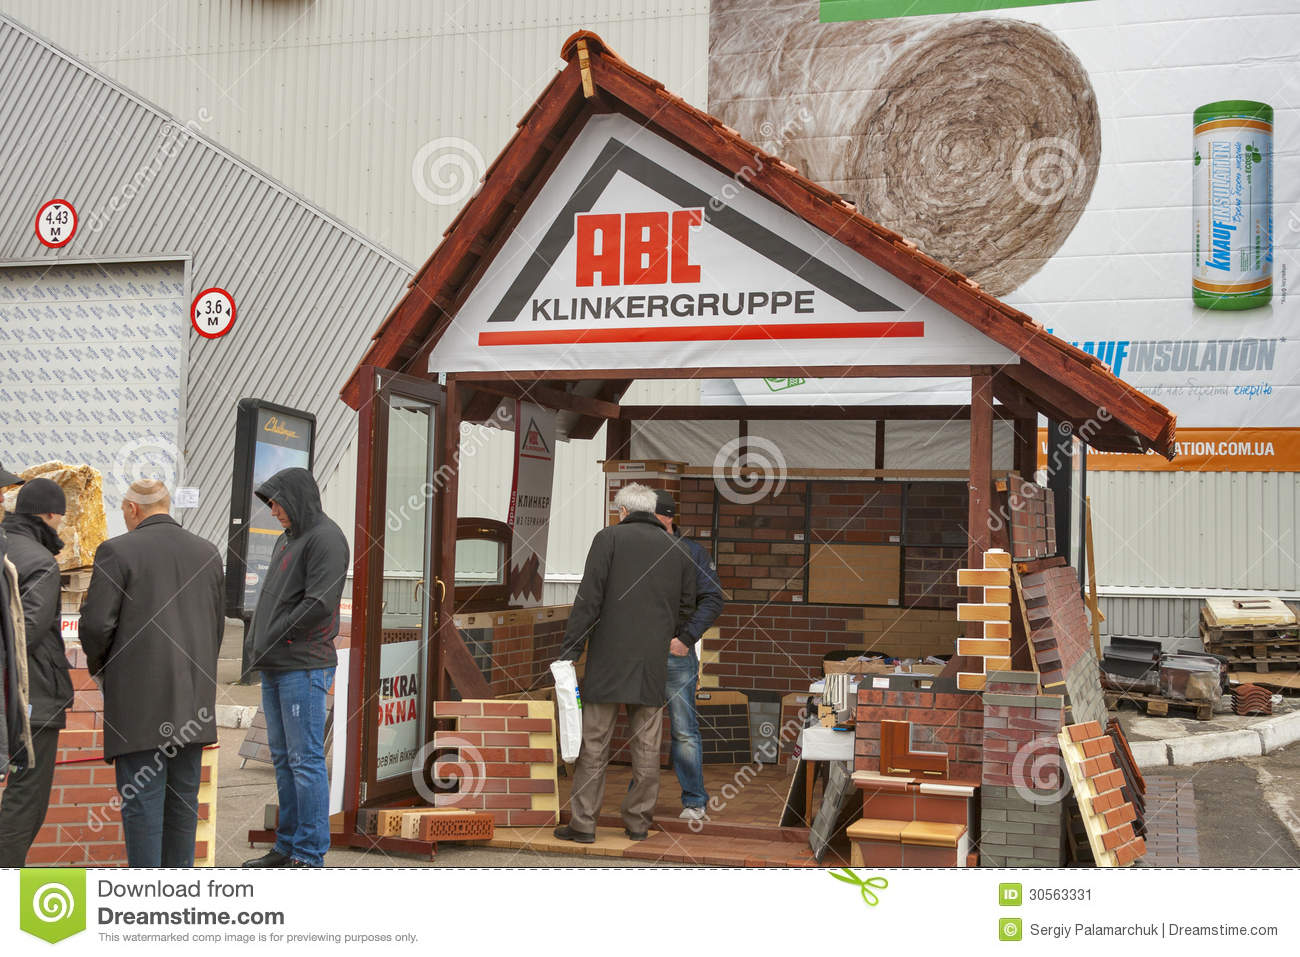 Clinker Building Products : Abc clinker group german company booth editorial photo